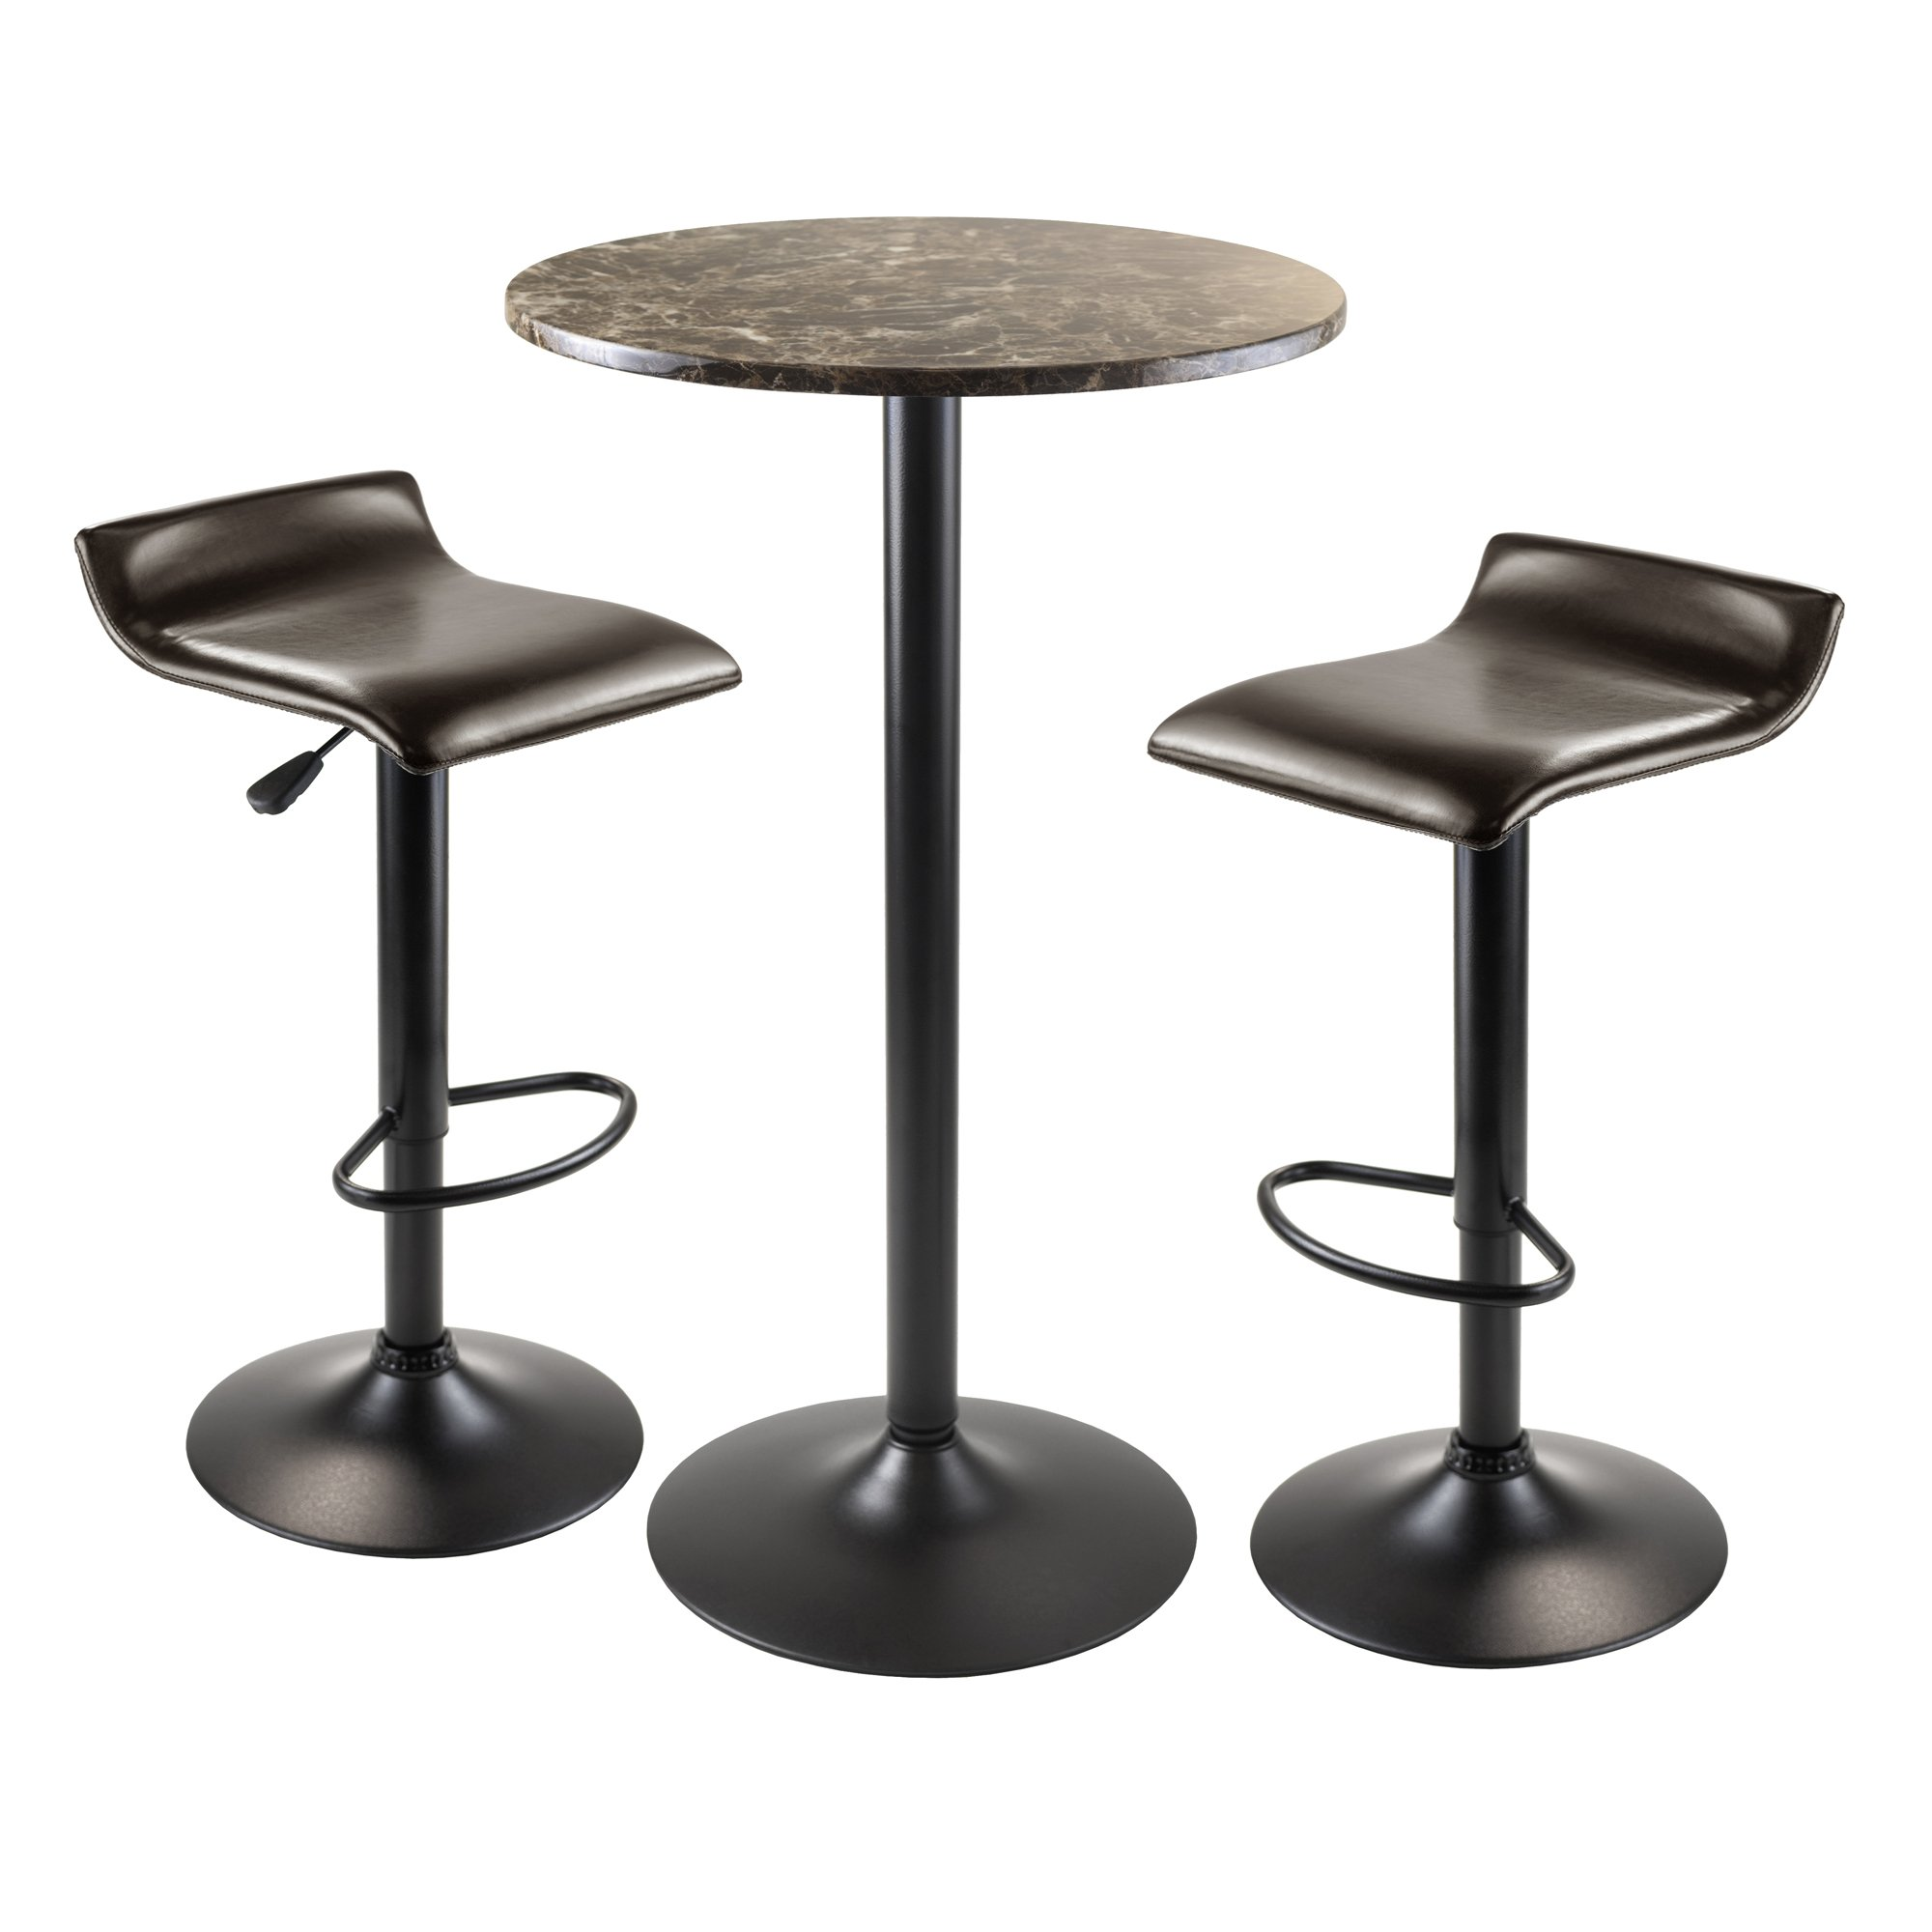 Winsome Wood Cora 3-Piece Round Pub Table with 2 Swivel Stool Set by Winsome Wood